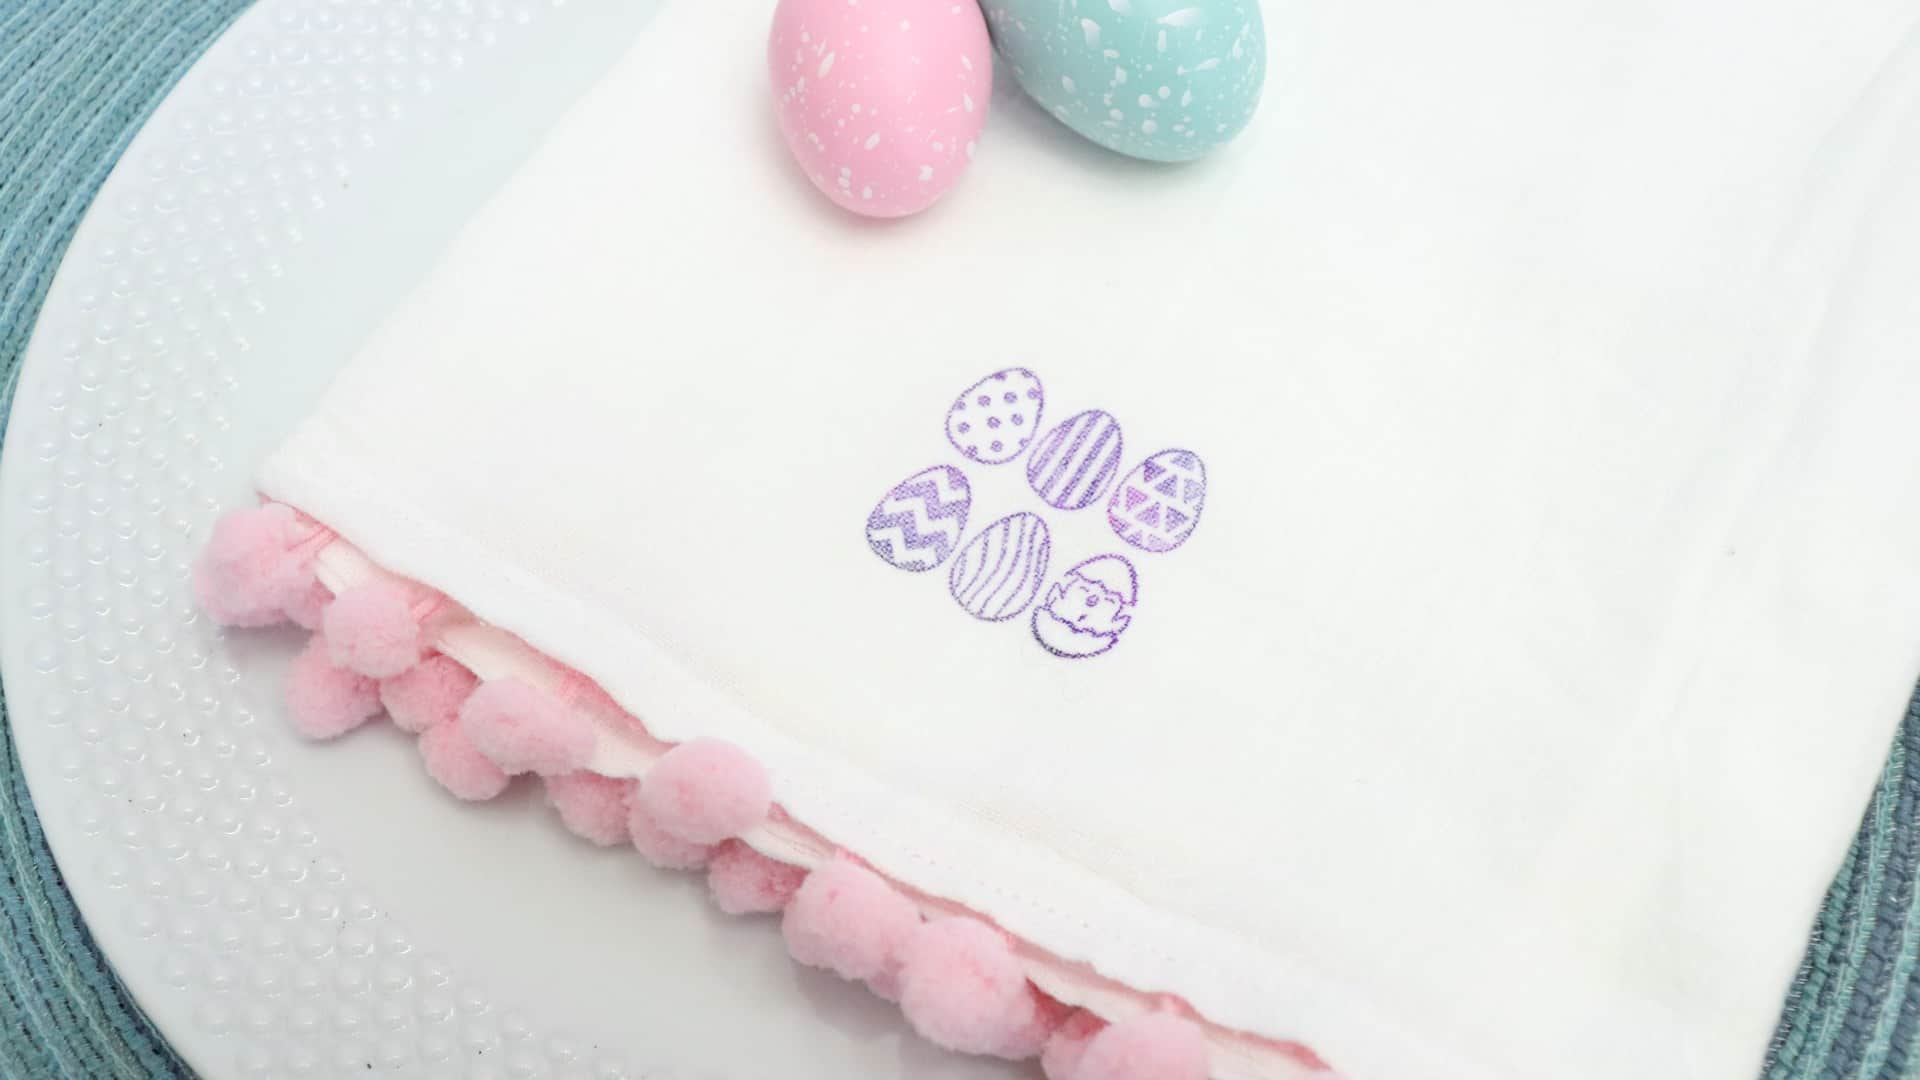 Easter towel with pom poms and stamped fabric